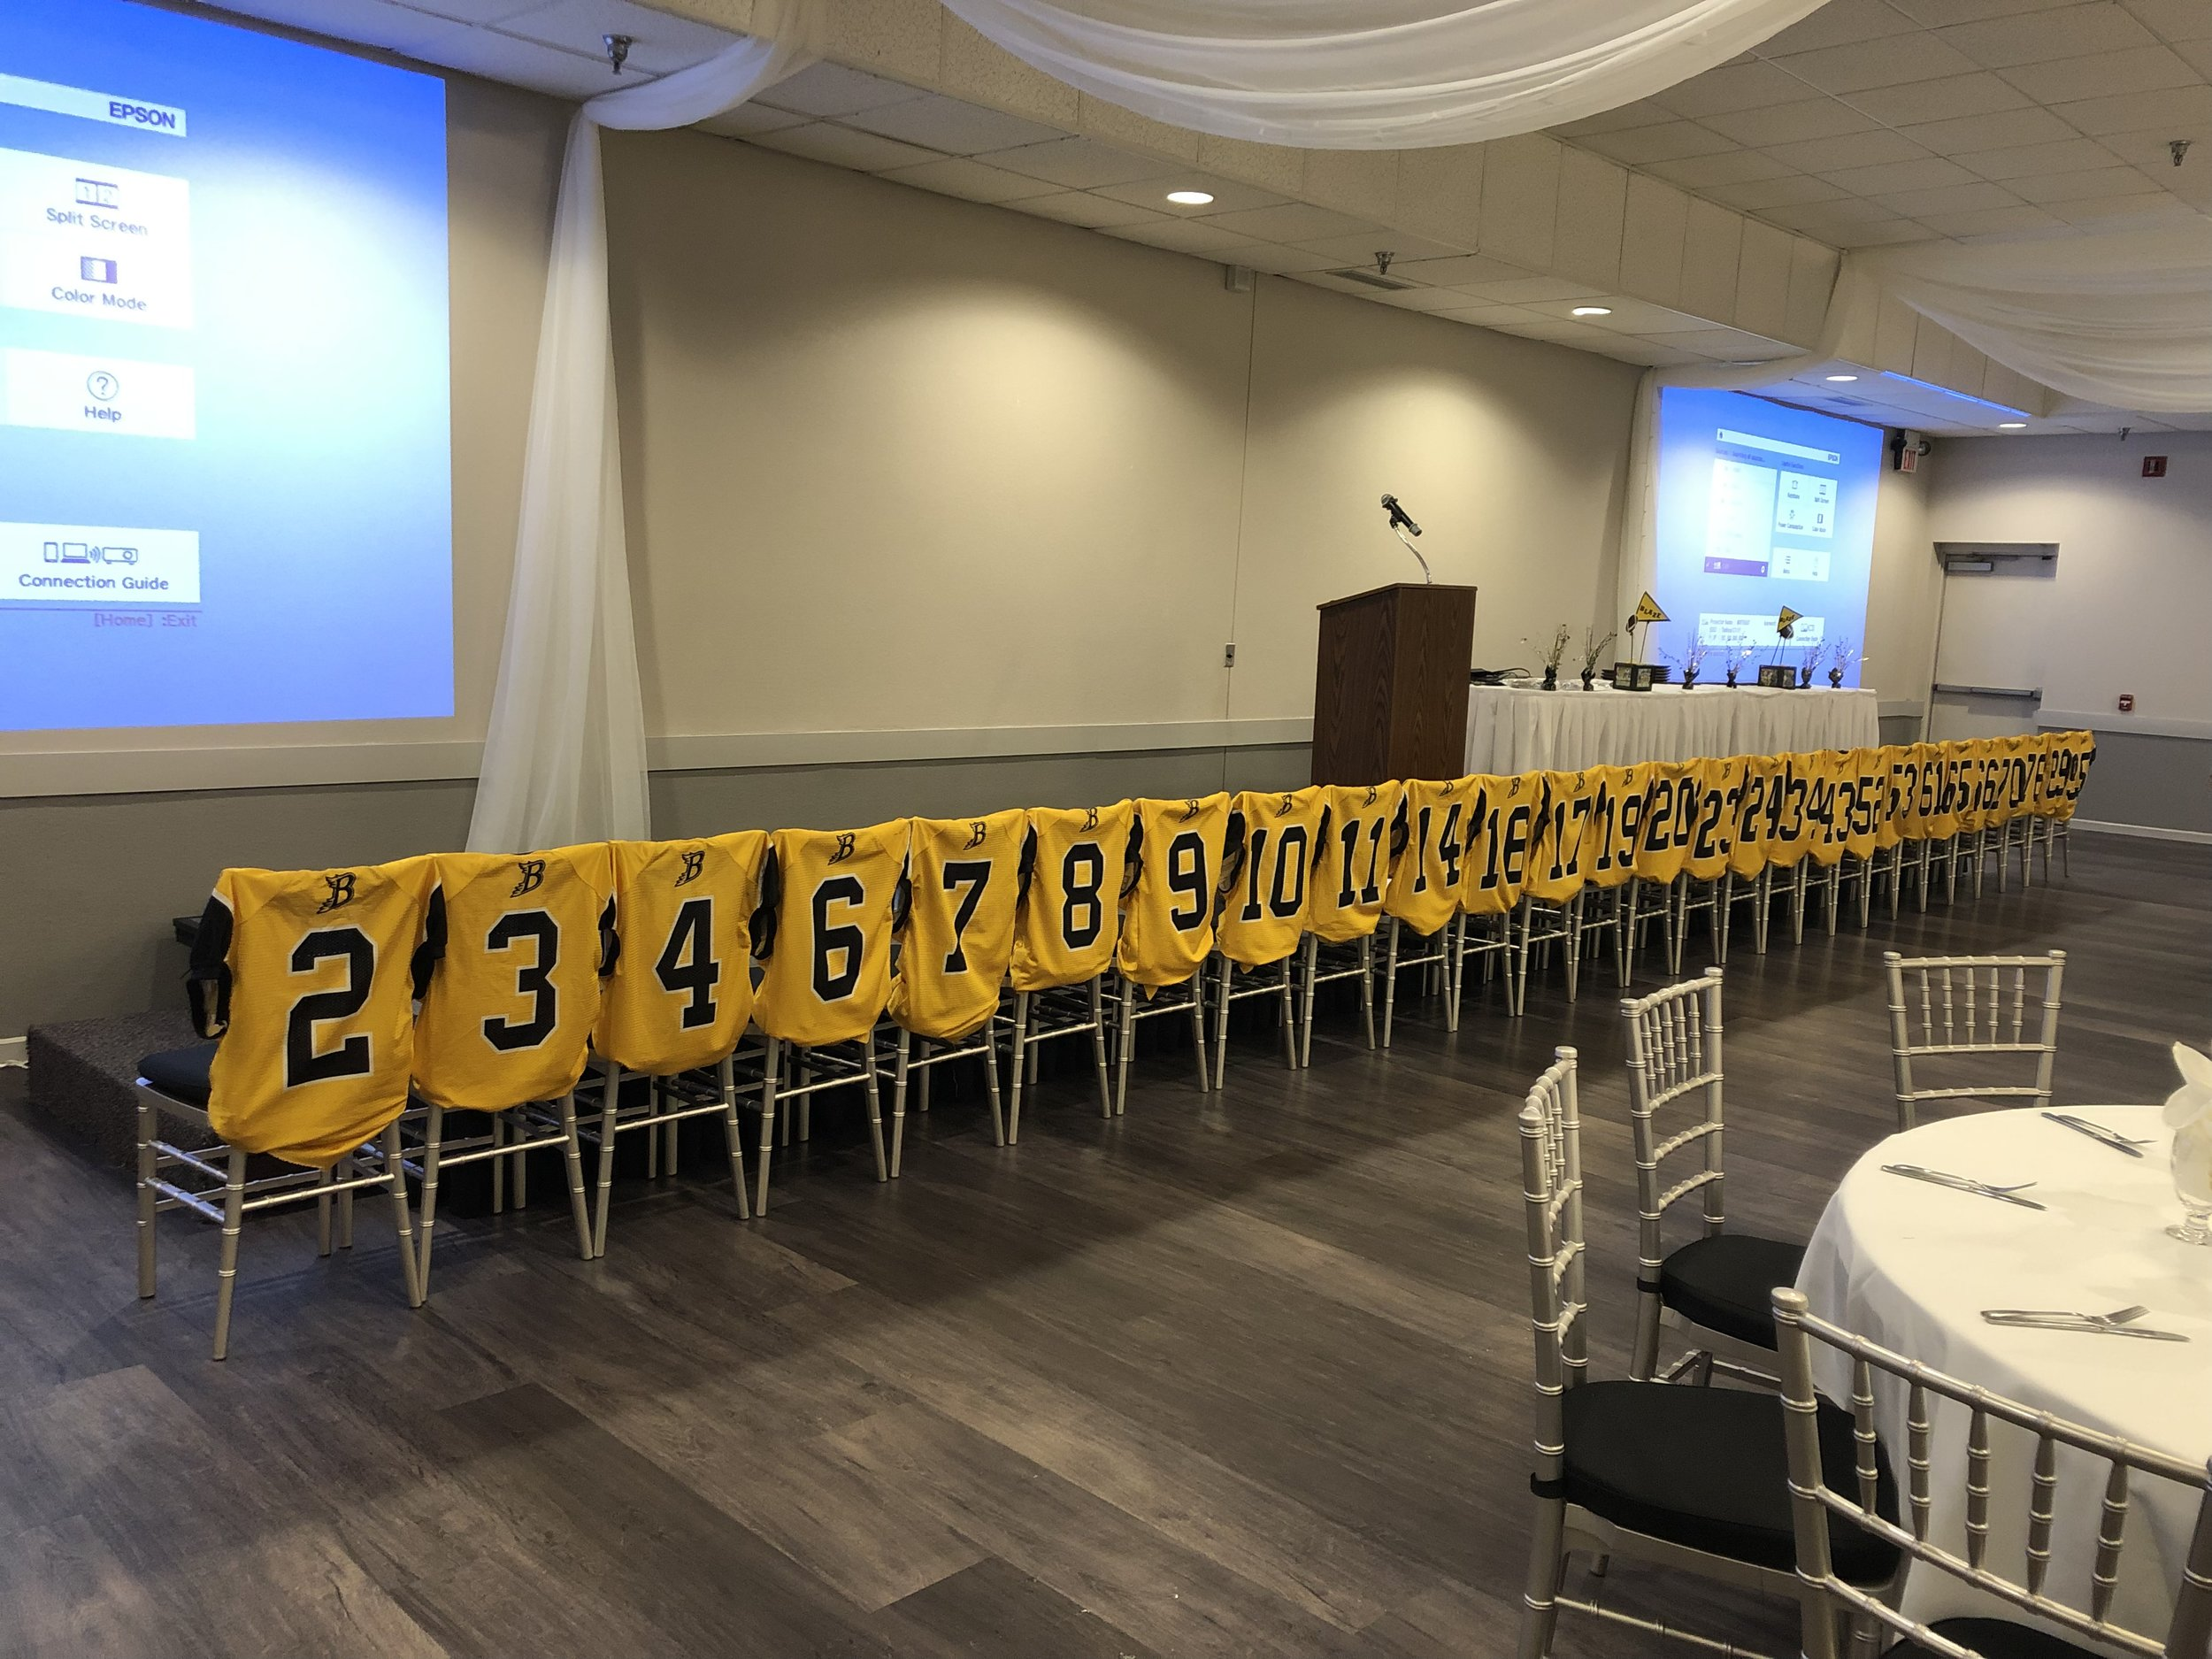 High School Banquet Hall in Eagan for sports award ceremony | Burnsville High School Football | jerseys on the back of the chairs